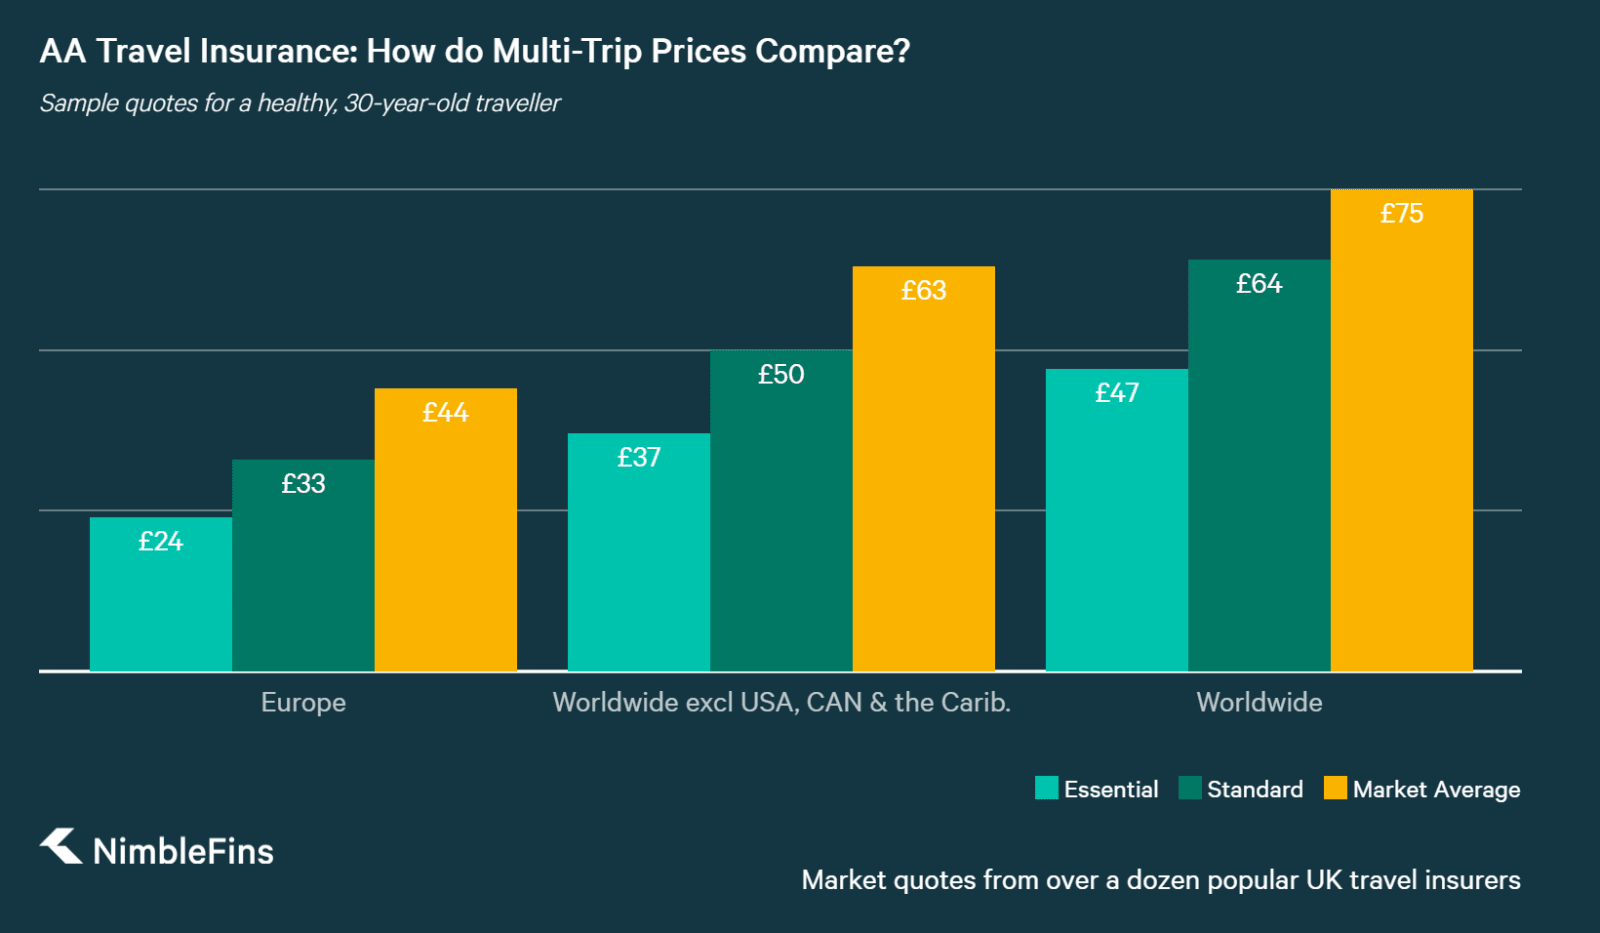 chart showing AA multi-trip travel insurance prices compared to market averages